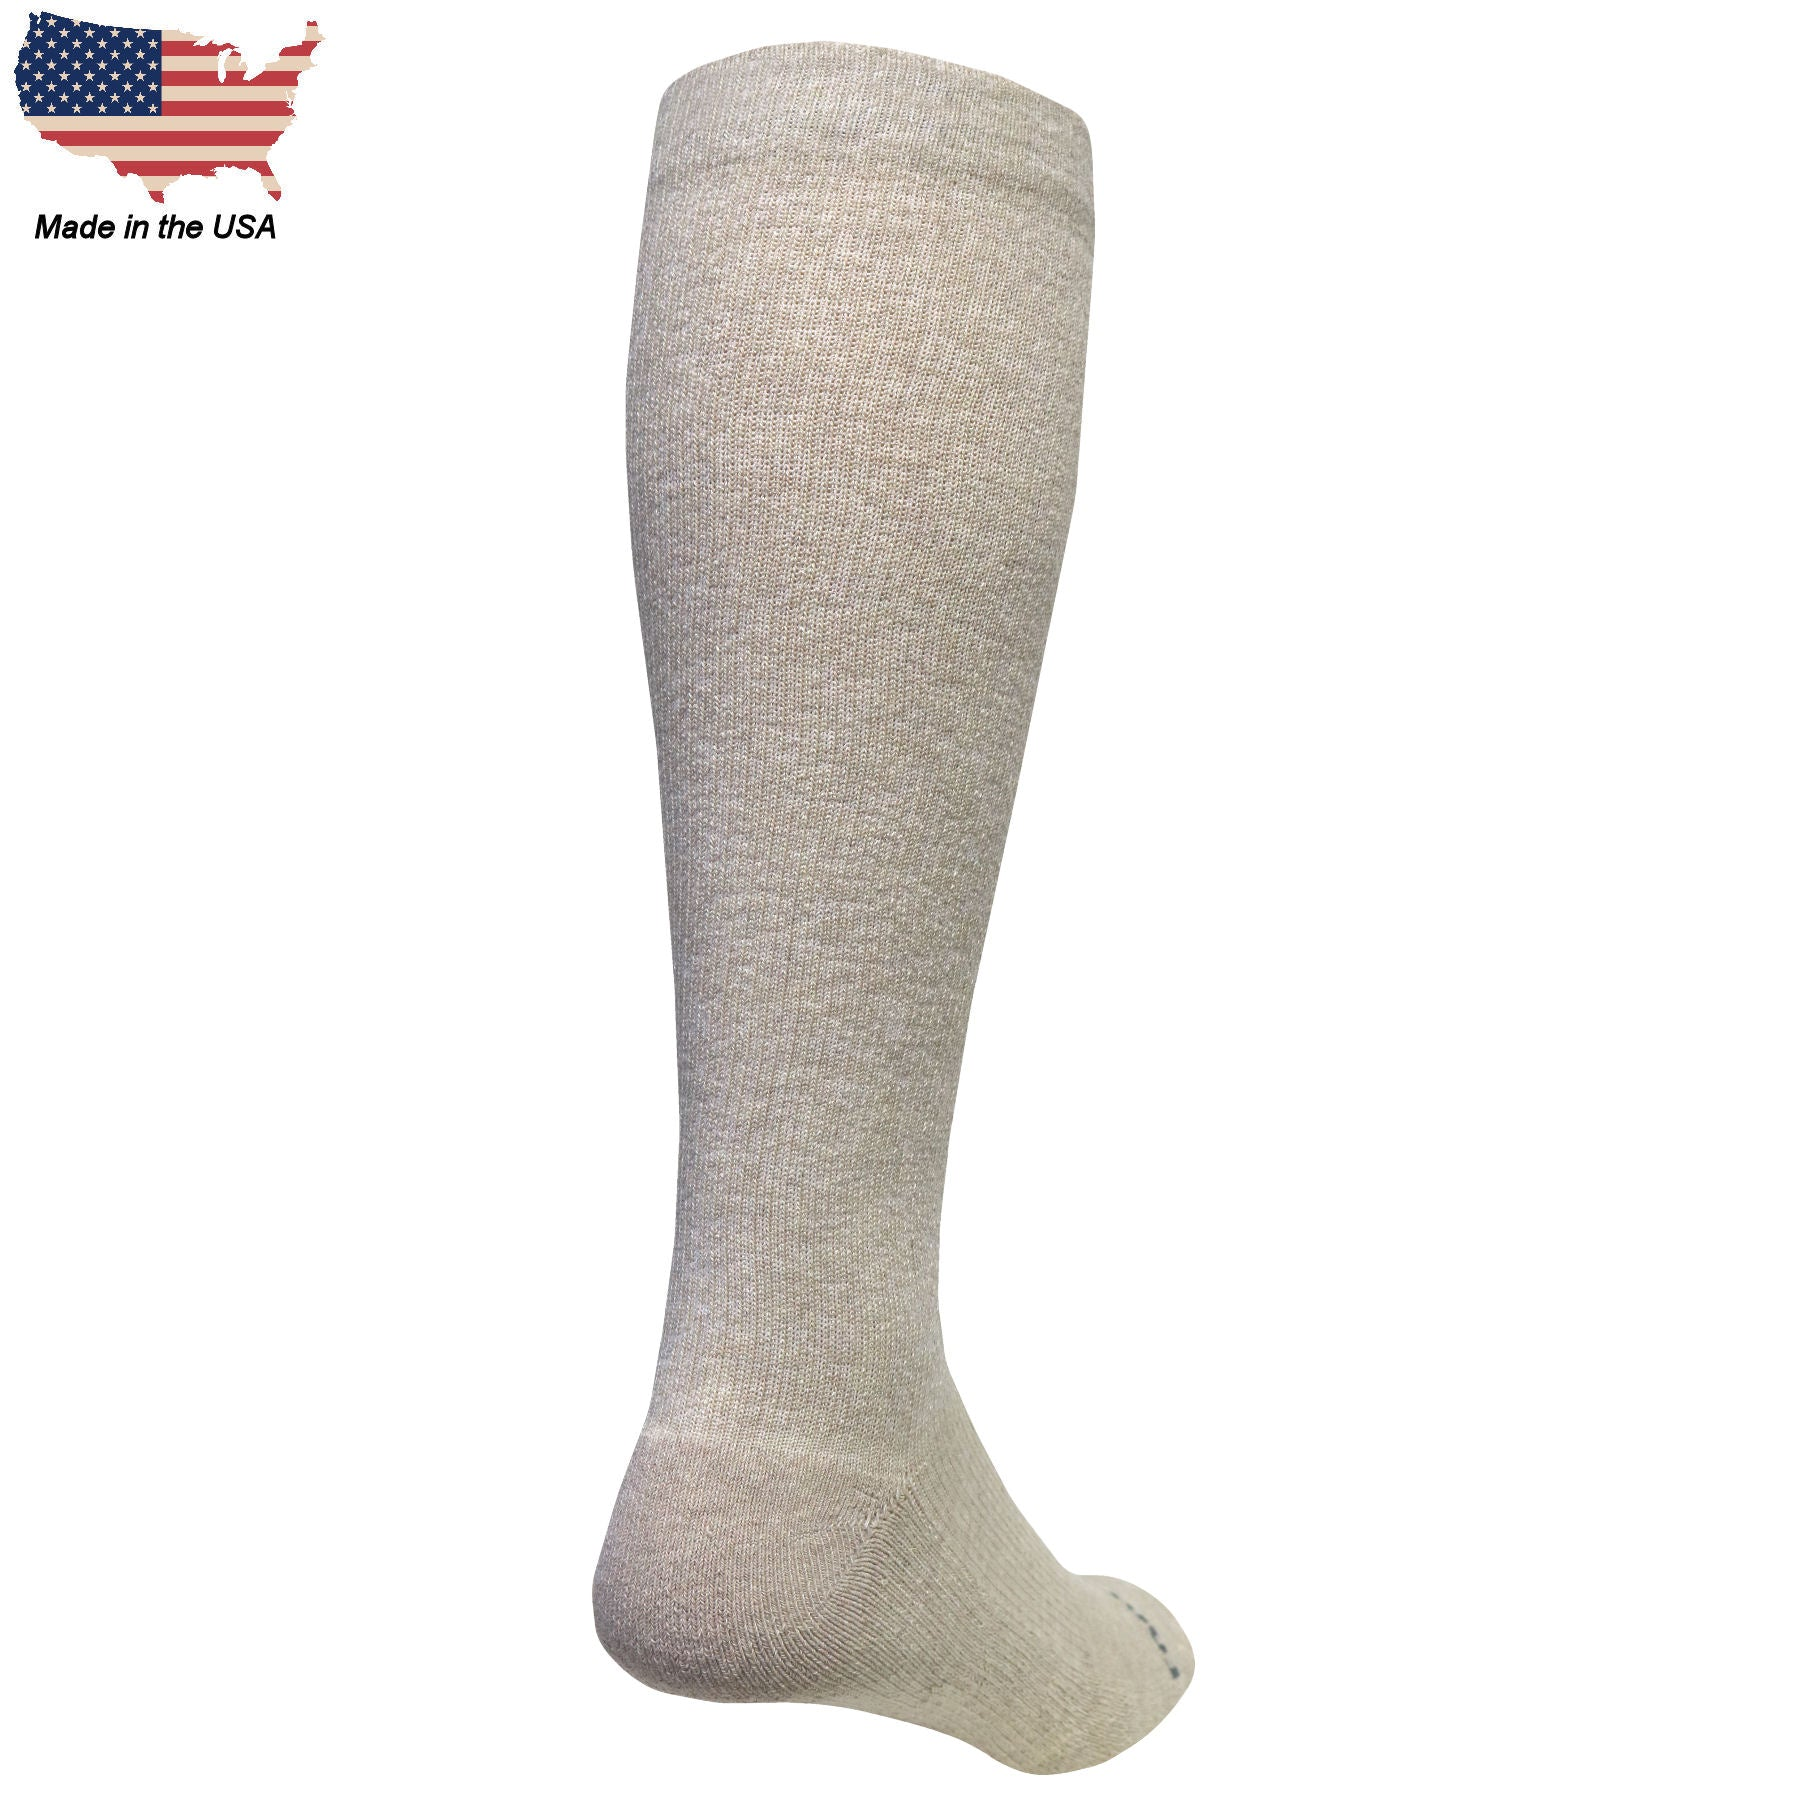 Foot Comfort Recover Graduated Compression Khaki OTC Socks